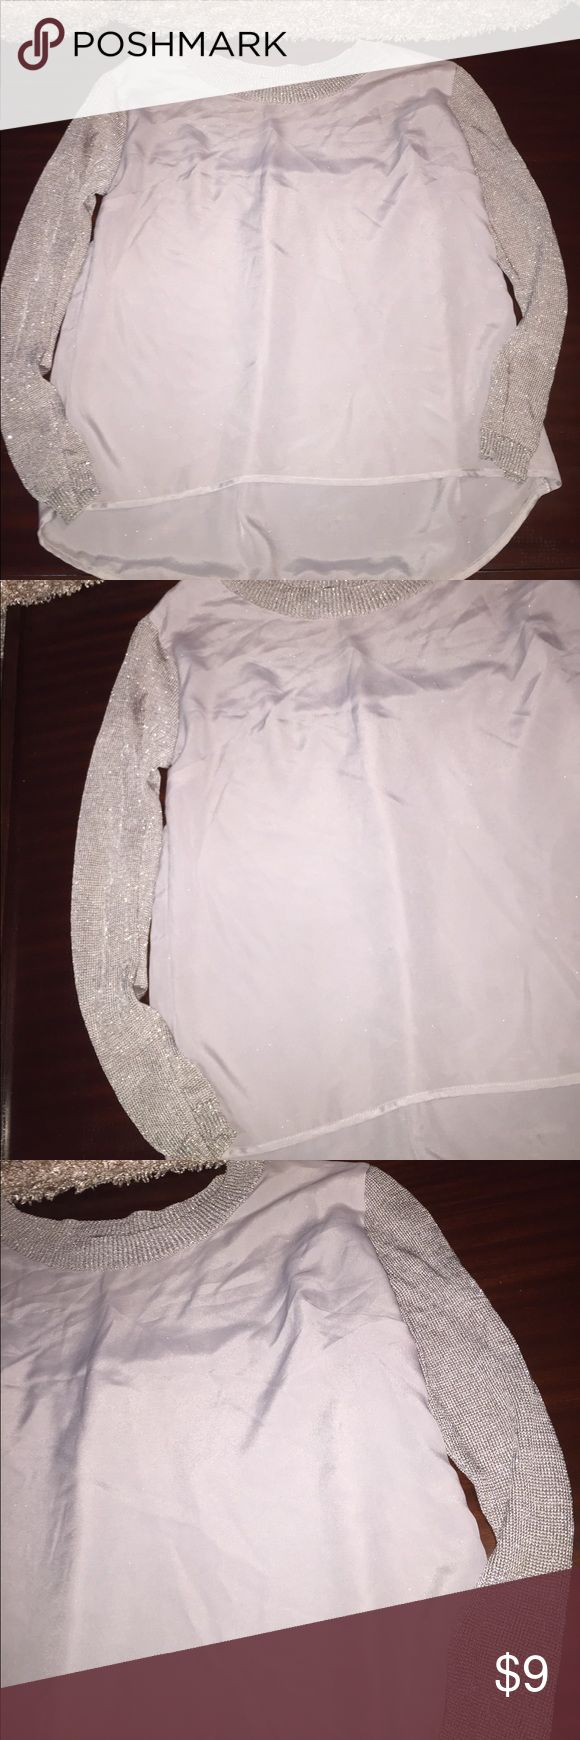 Silver pearl marisol white lace 1 - Ab Studio Silver Light Weight Metallic Blouse M